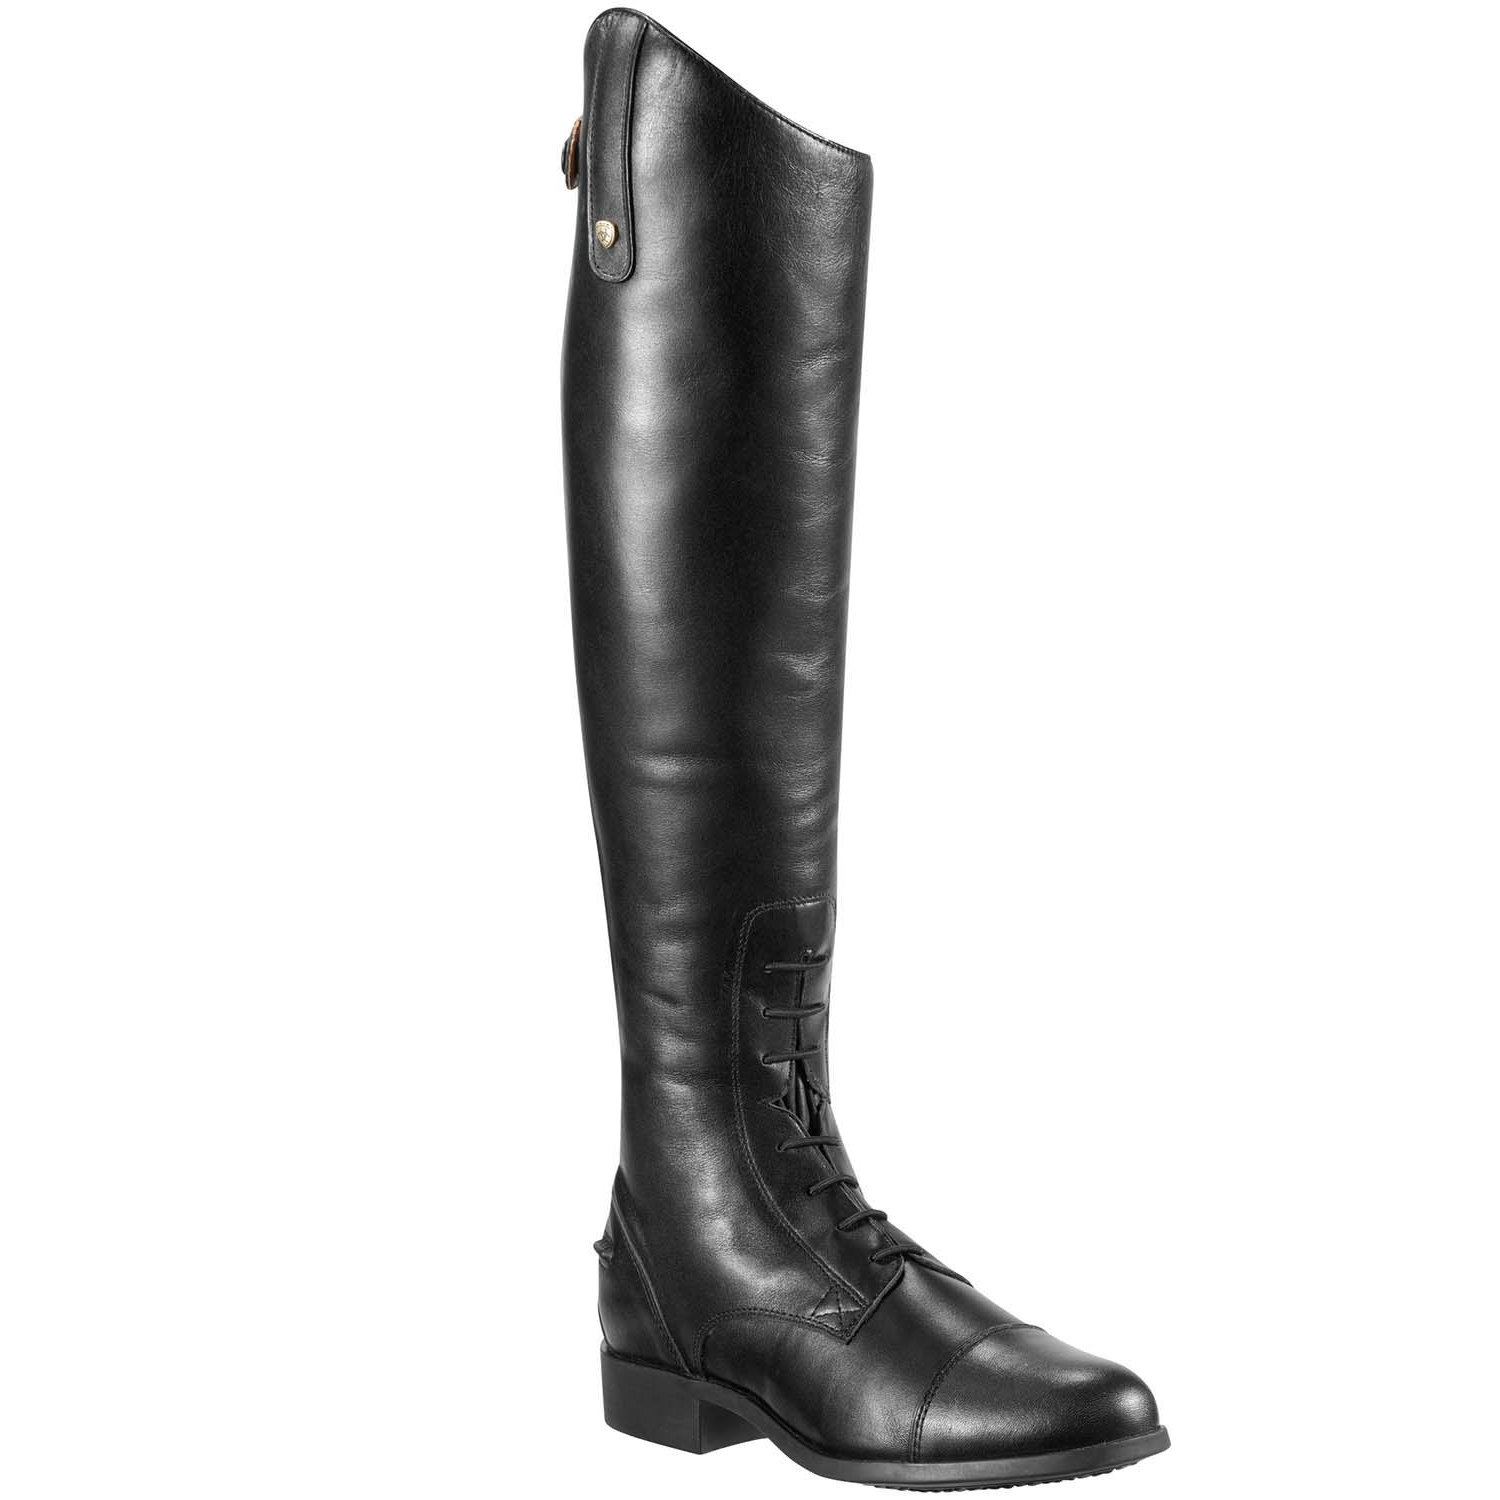 Ariat Heritage Contour Riding Boot - Black: Amazon.co.uk: Sports ...